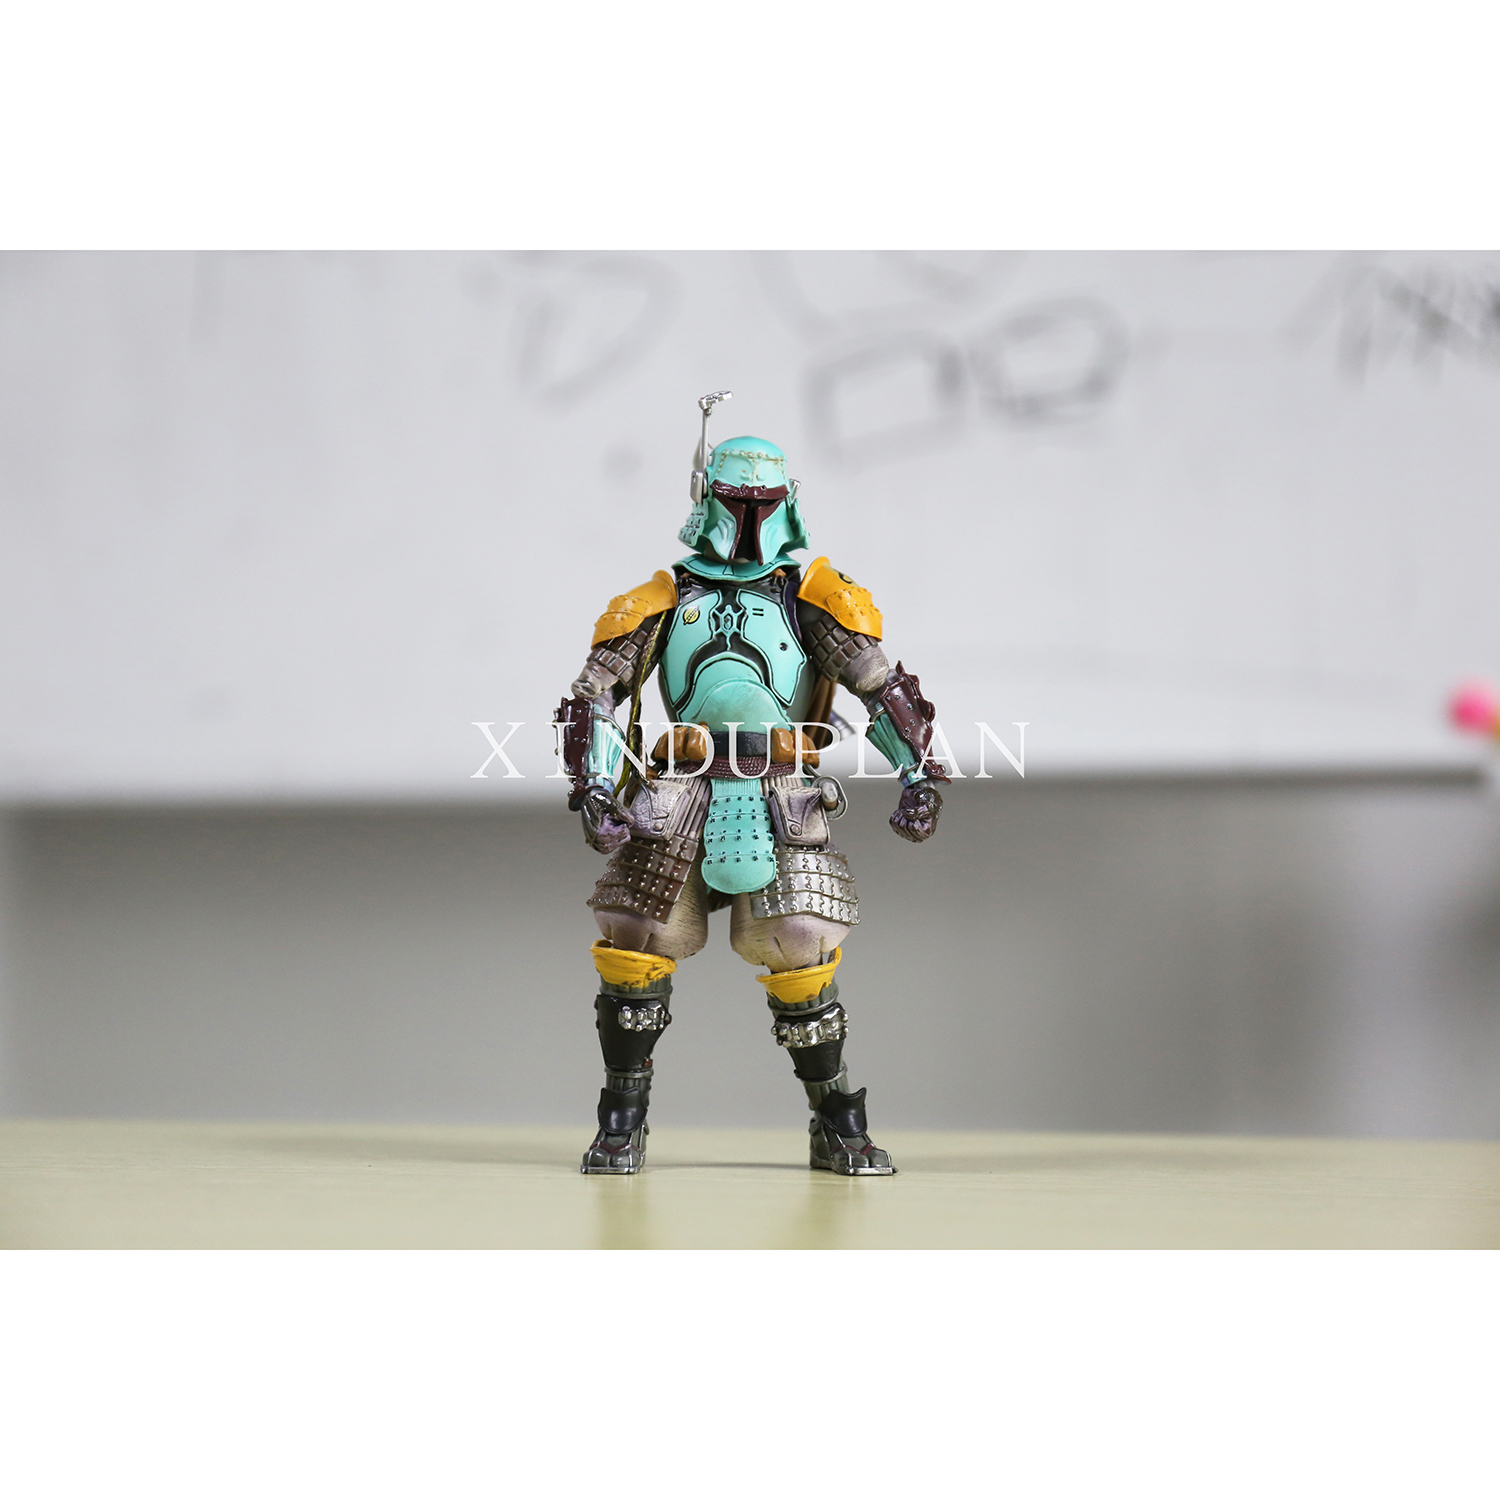 XINDUPLAN Star Wars MOVIE REALIZATION Boba Fett Bounty